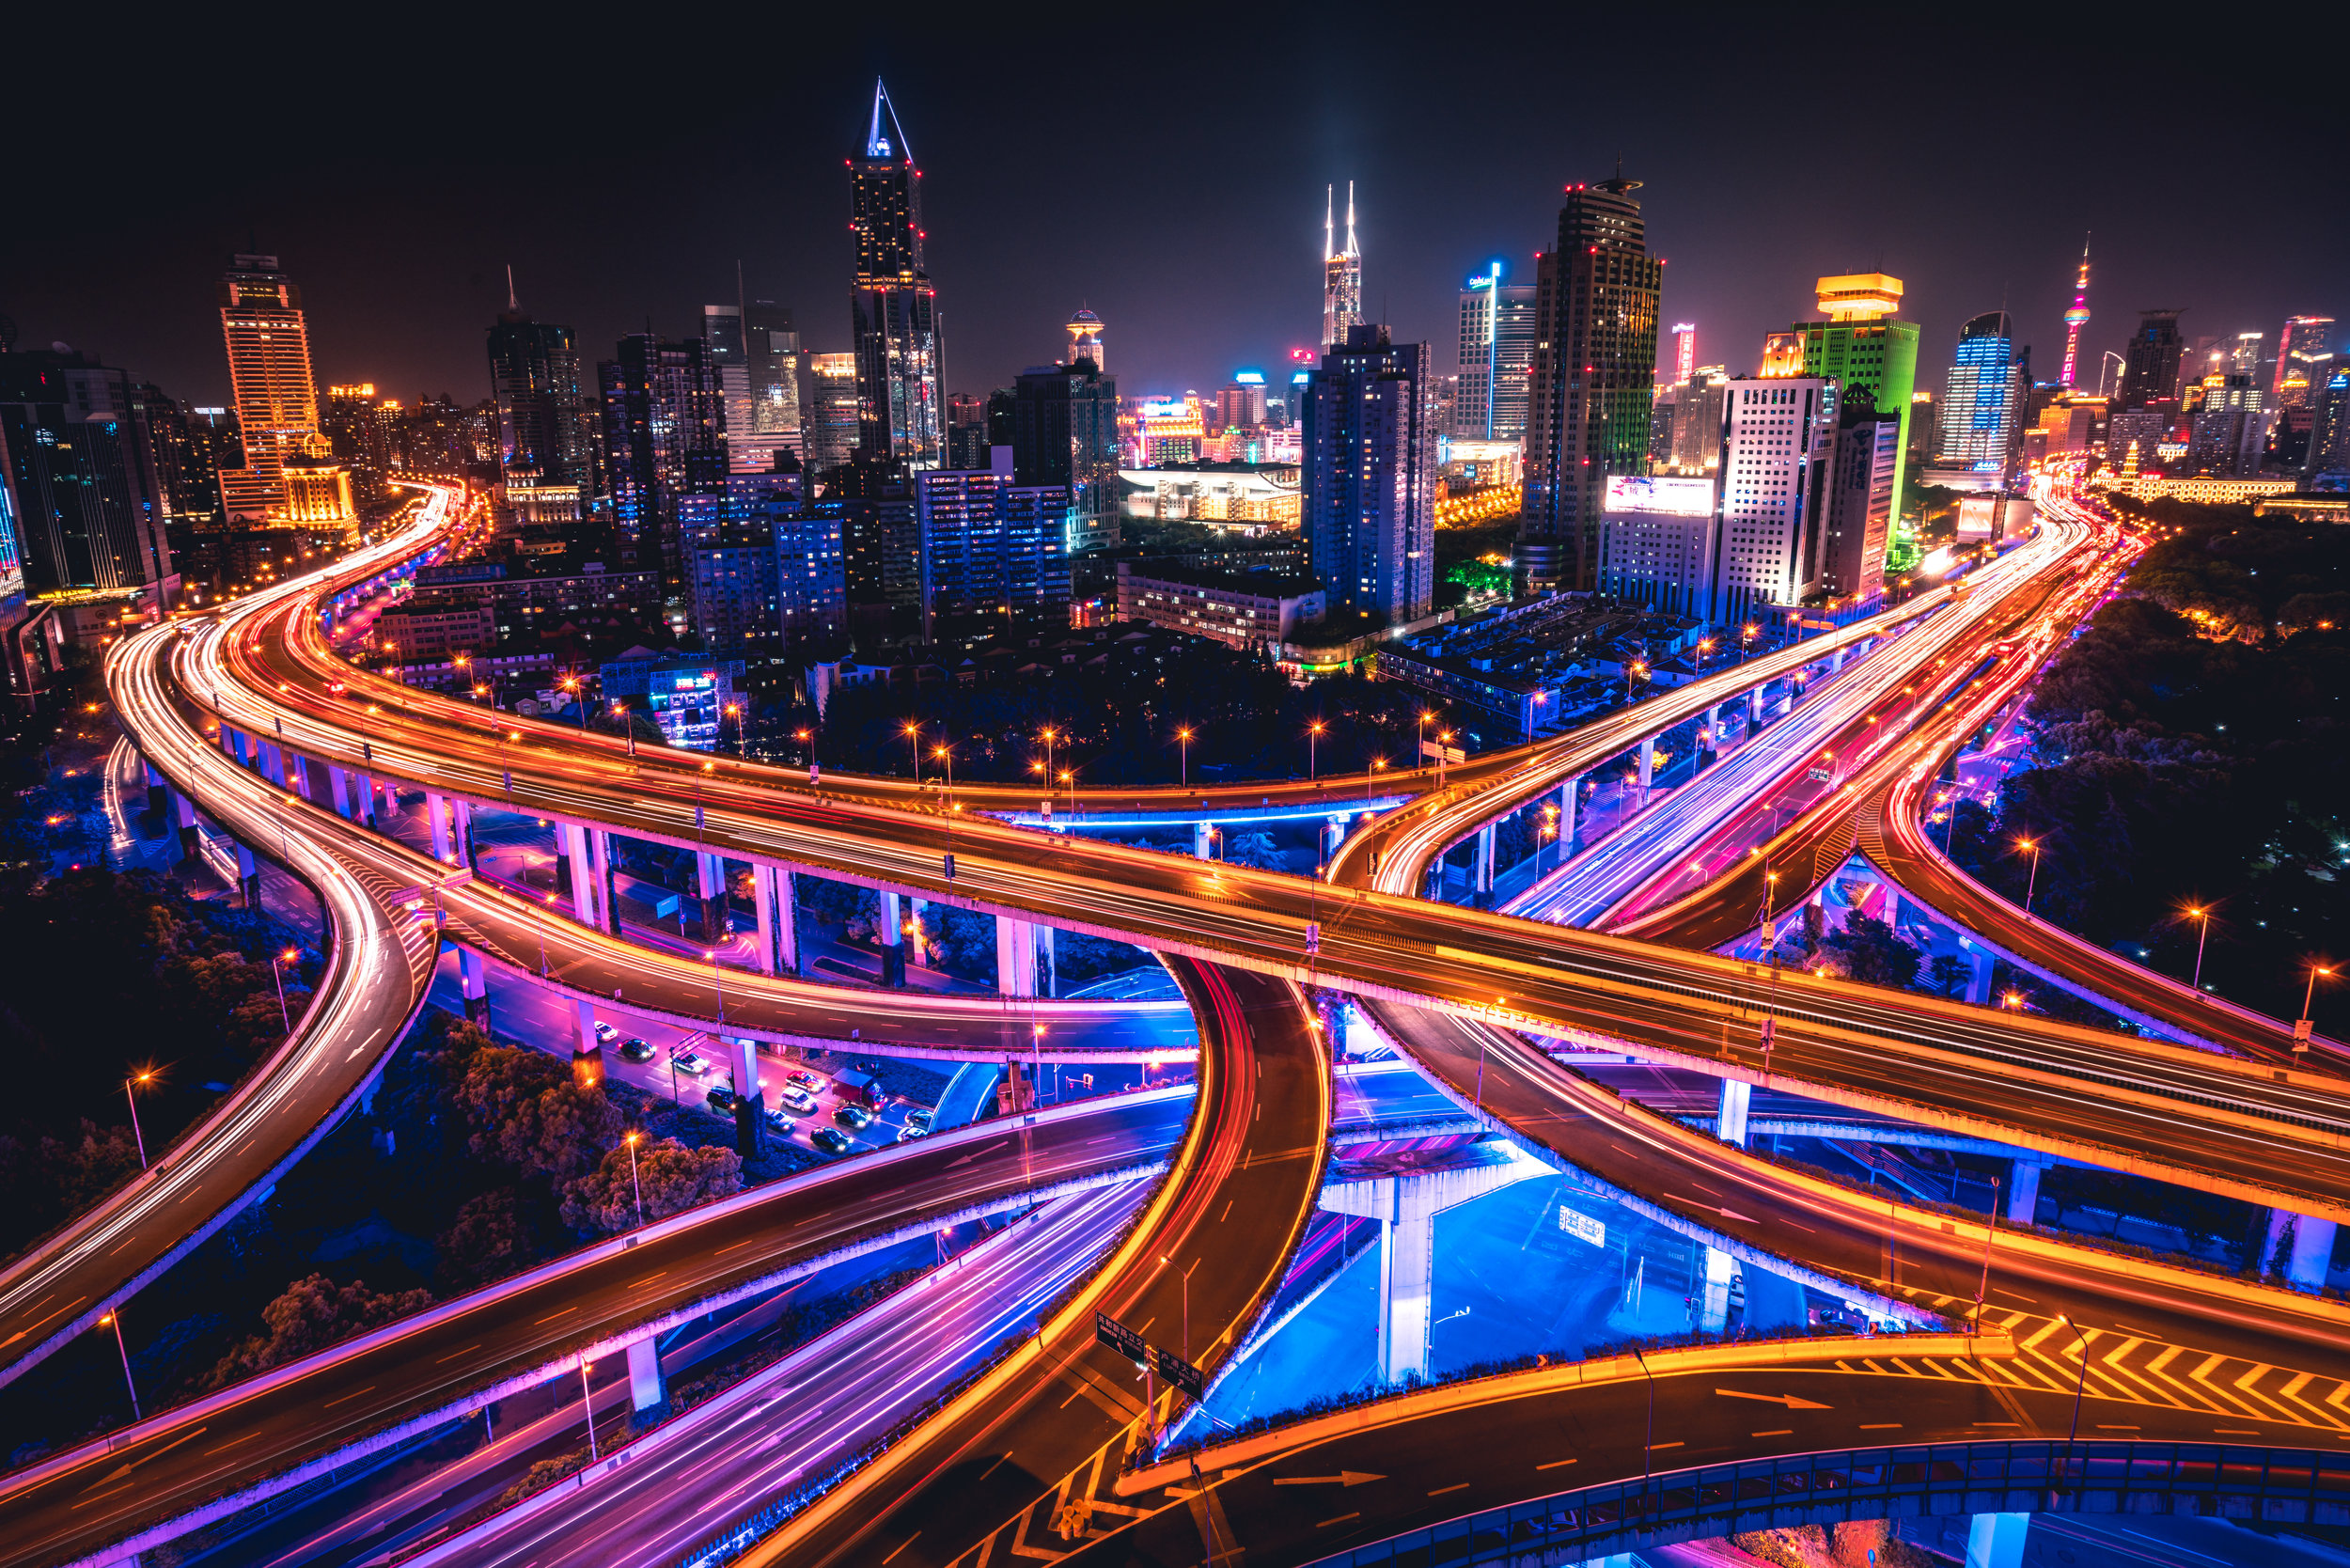 Shanghai - Shanghai is another place I travel to a lot for work. It's one of my favorite places to take night shots because the city comes alive in neon colors when the sun goes down.